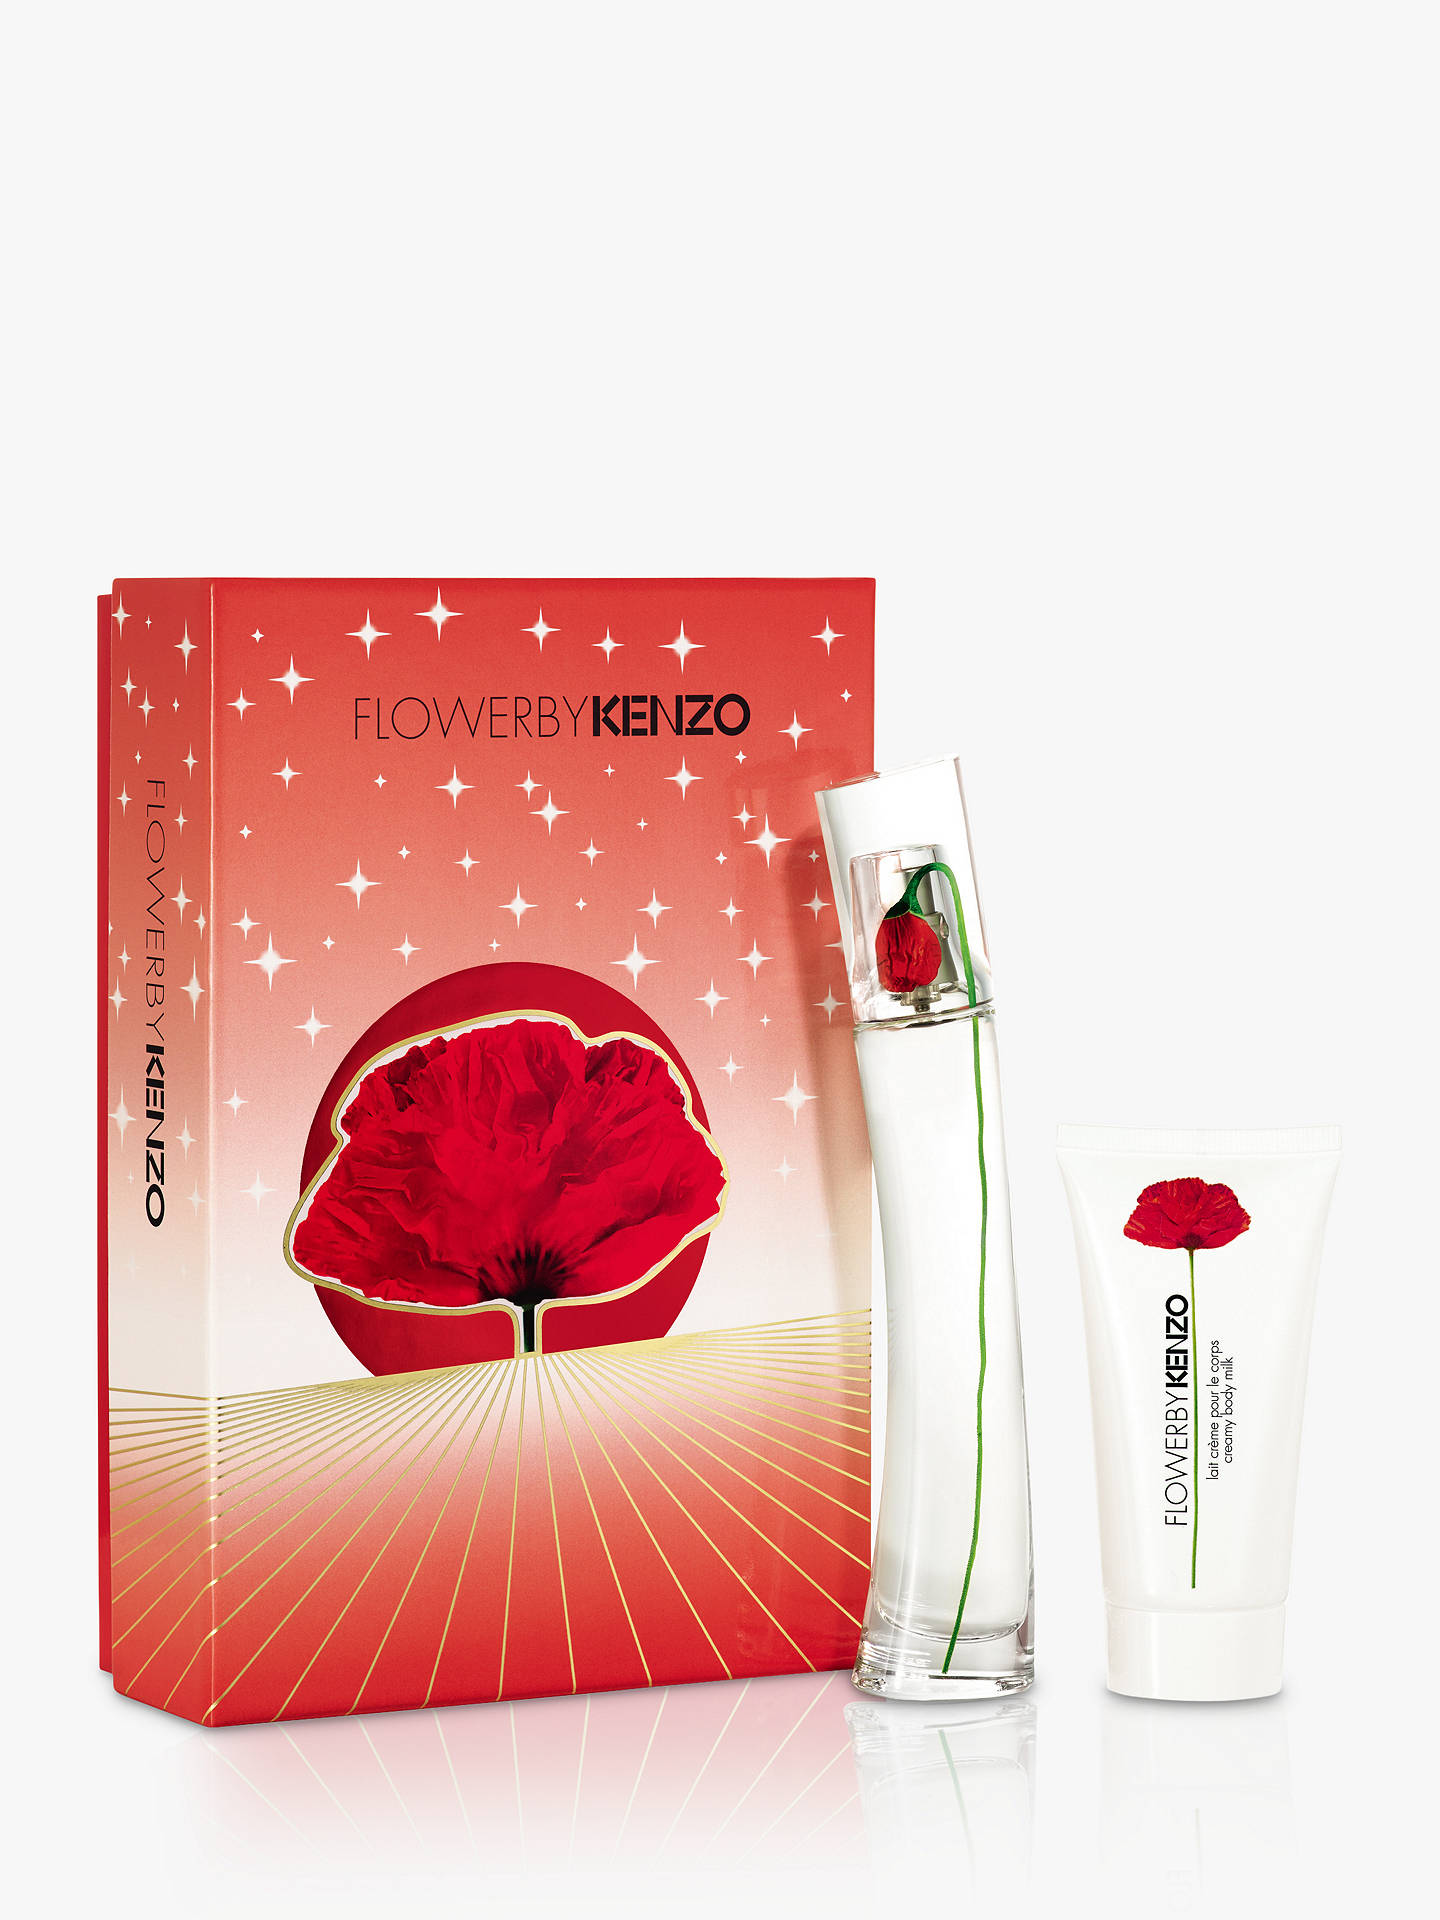 Kenzo flower by kenzo eau de parfum 30ml gift set at john lewis buykenzo flower by kenzo eau de parfum 30ml gift set online at johnlewis izmirmasajfo